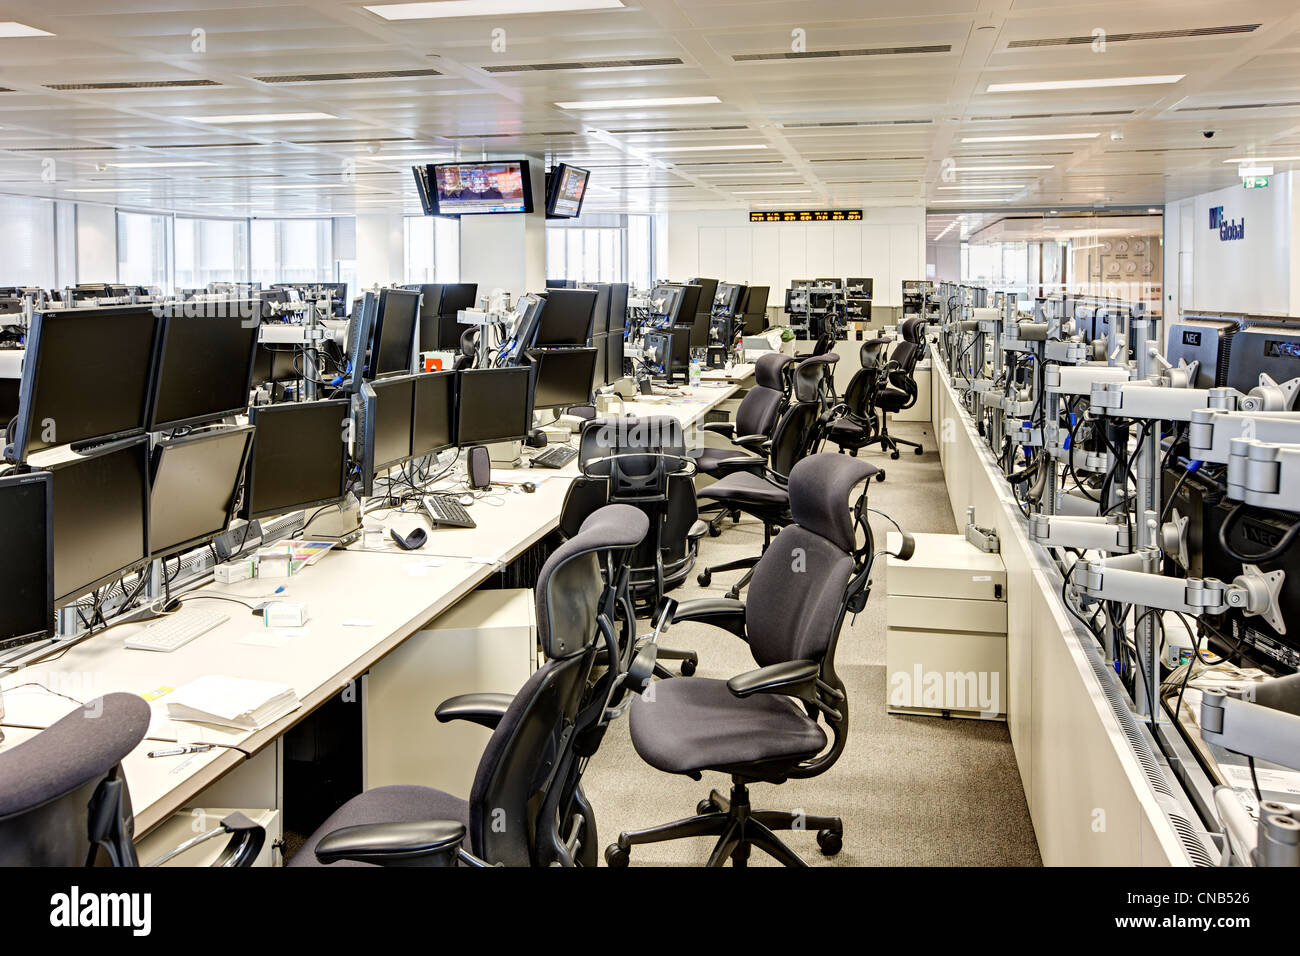 trading floor bank untidy mess sacked fired close down - Stock Image